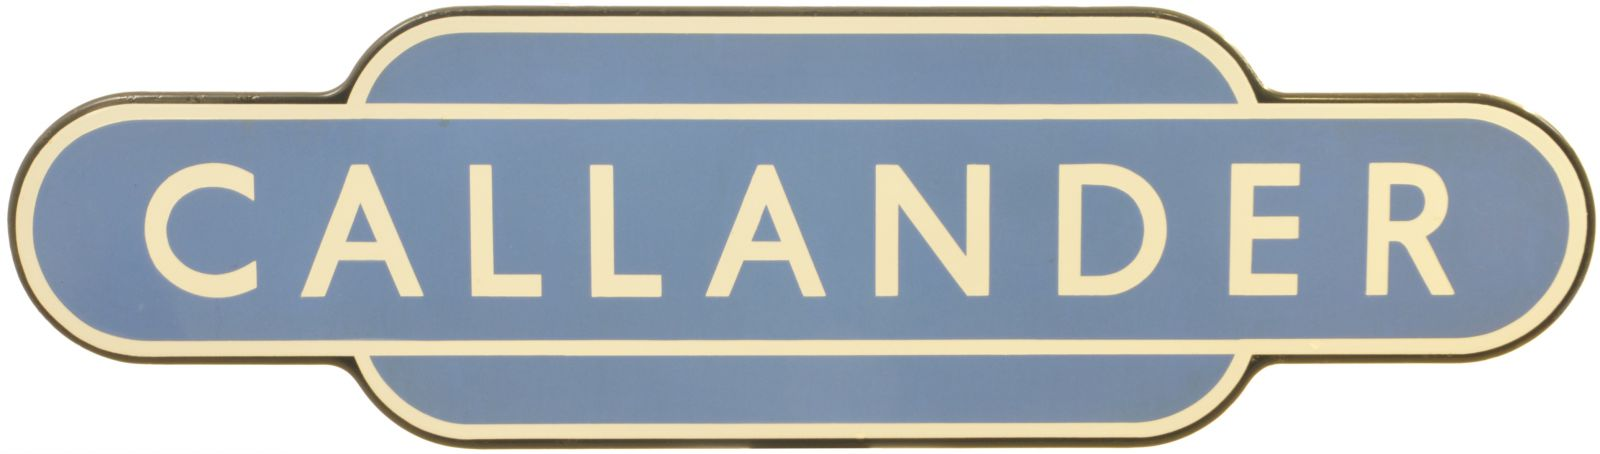 Lot 46 - Railway Station Totem Signs, Callander: A BR(Sc) totem sign, CALLANDER, (f/f) from the Dunblane to